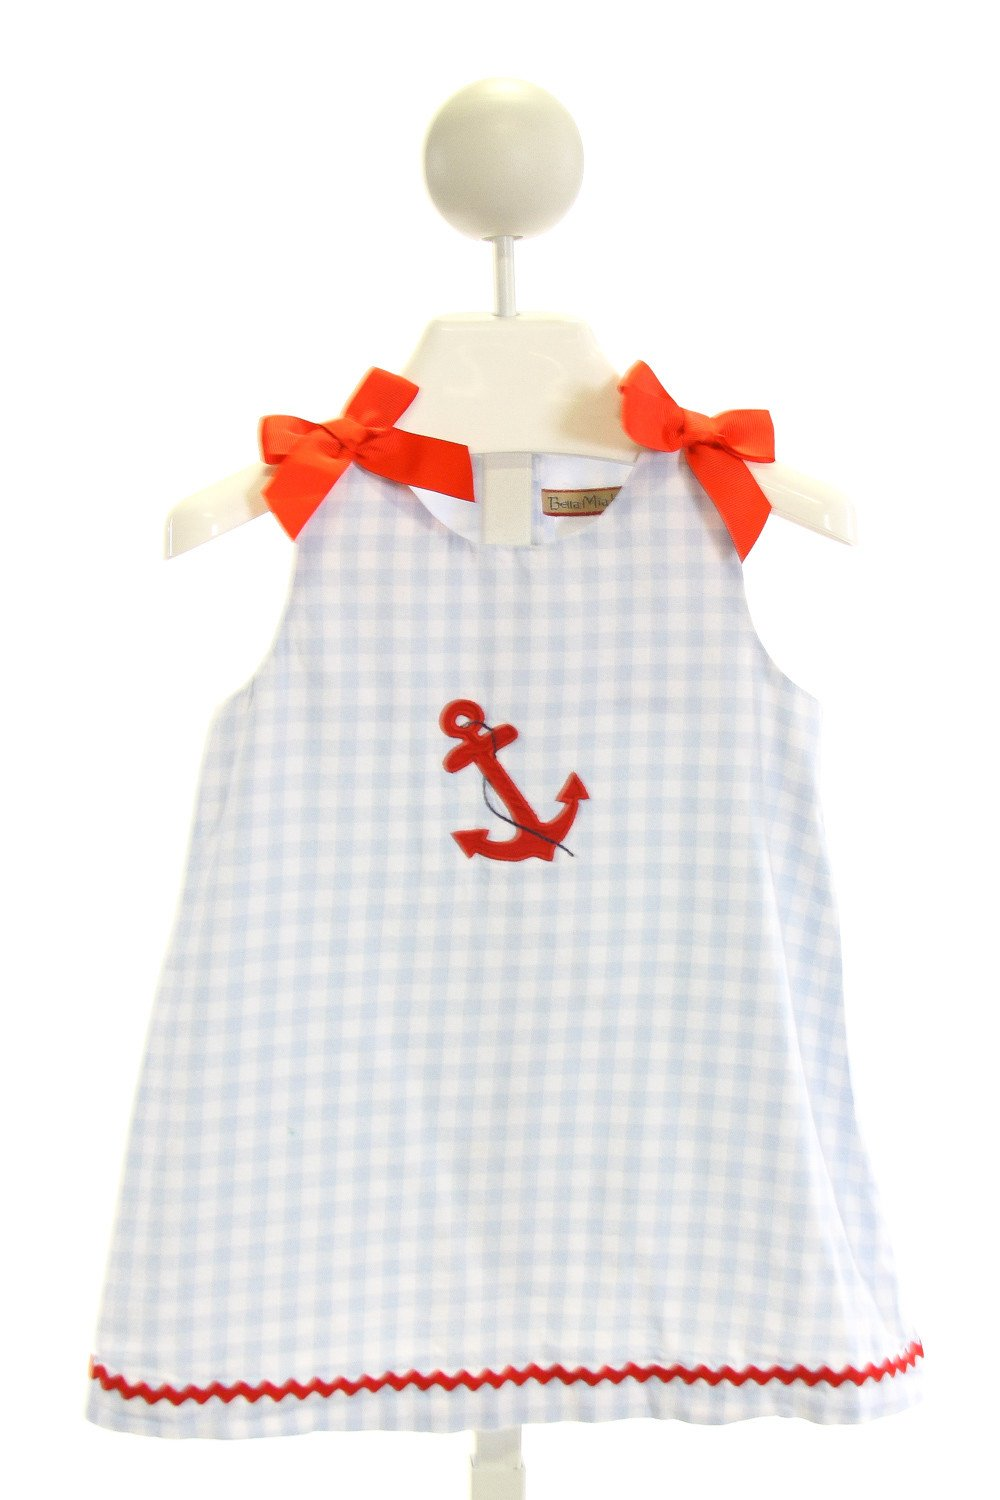 BELLA MIA KIDS  LT BLUE  GINGHAM EMBROIDERED DRESS WITH RIC RAC